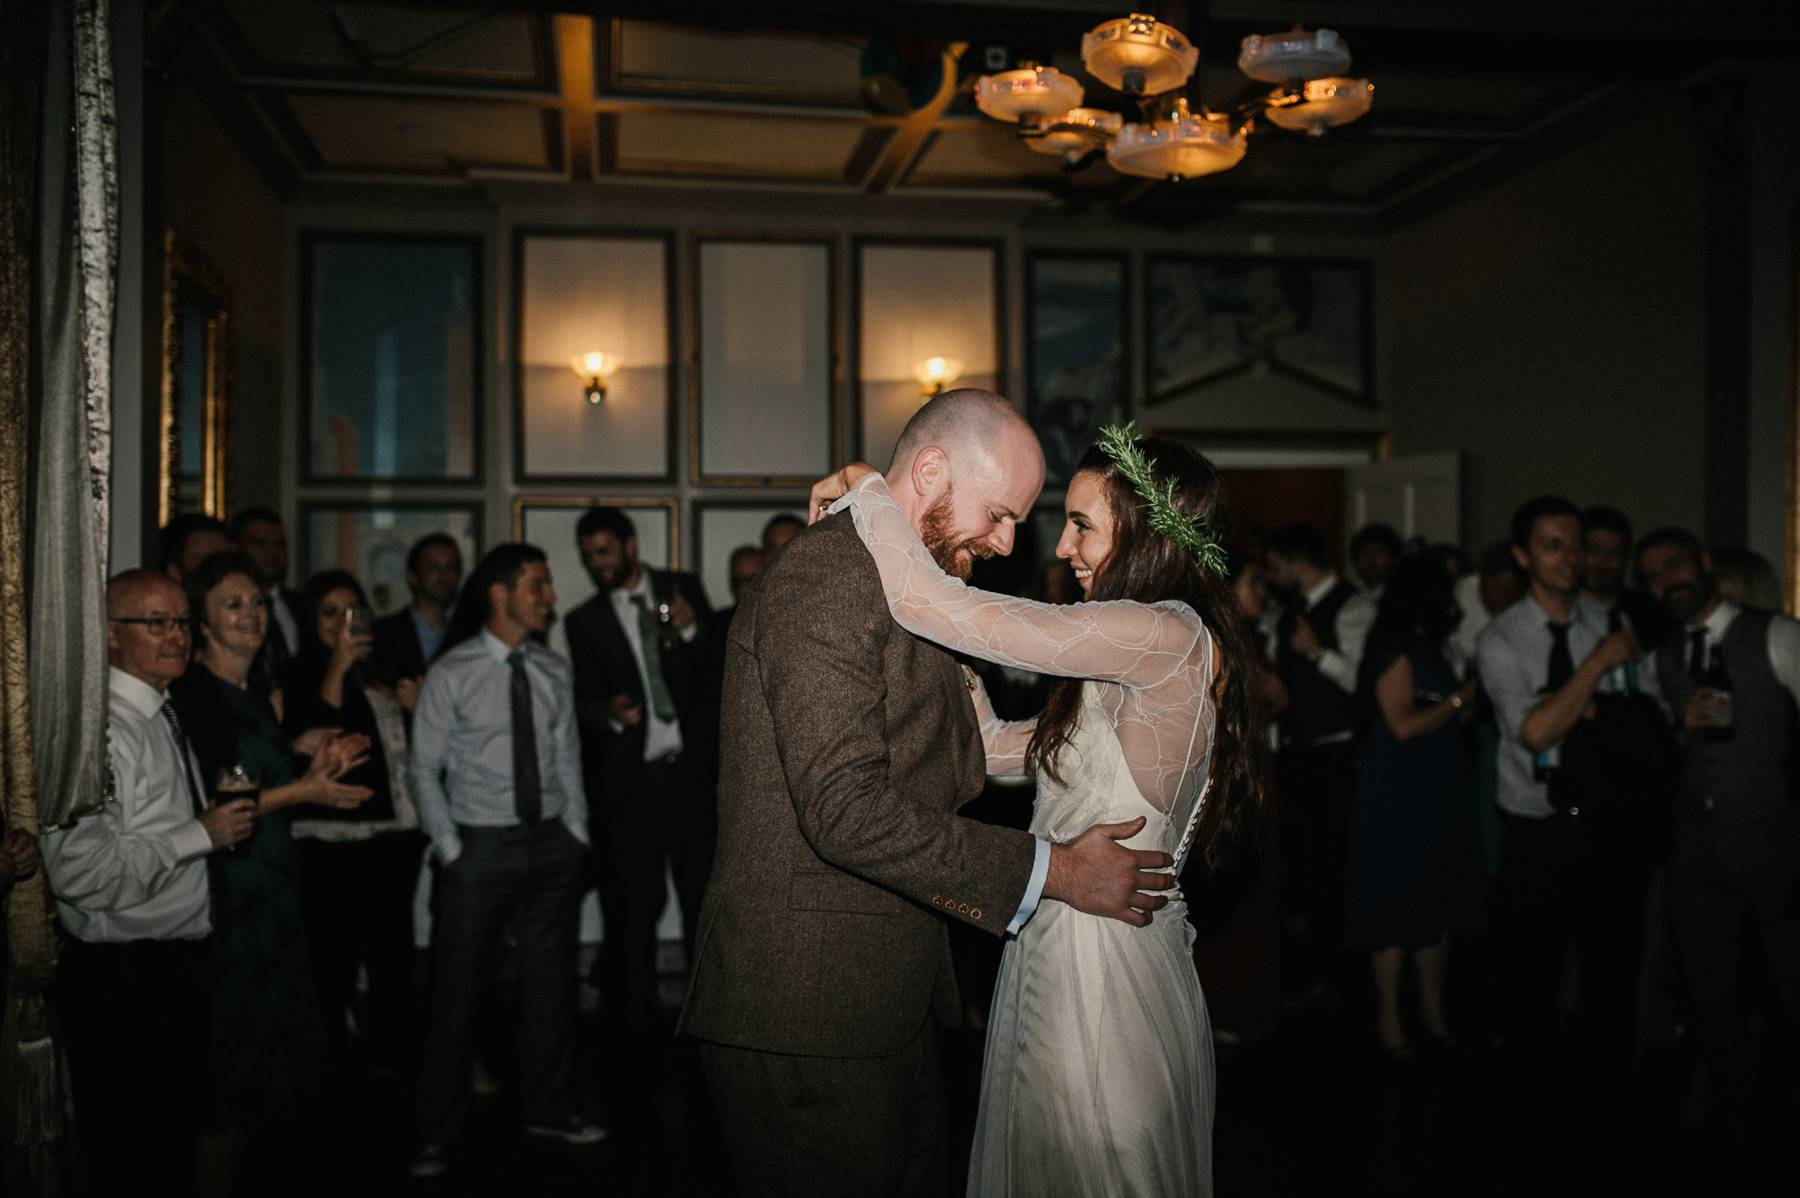 First dance at Ballinacurra house